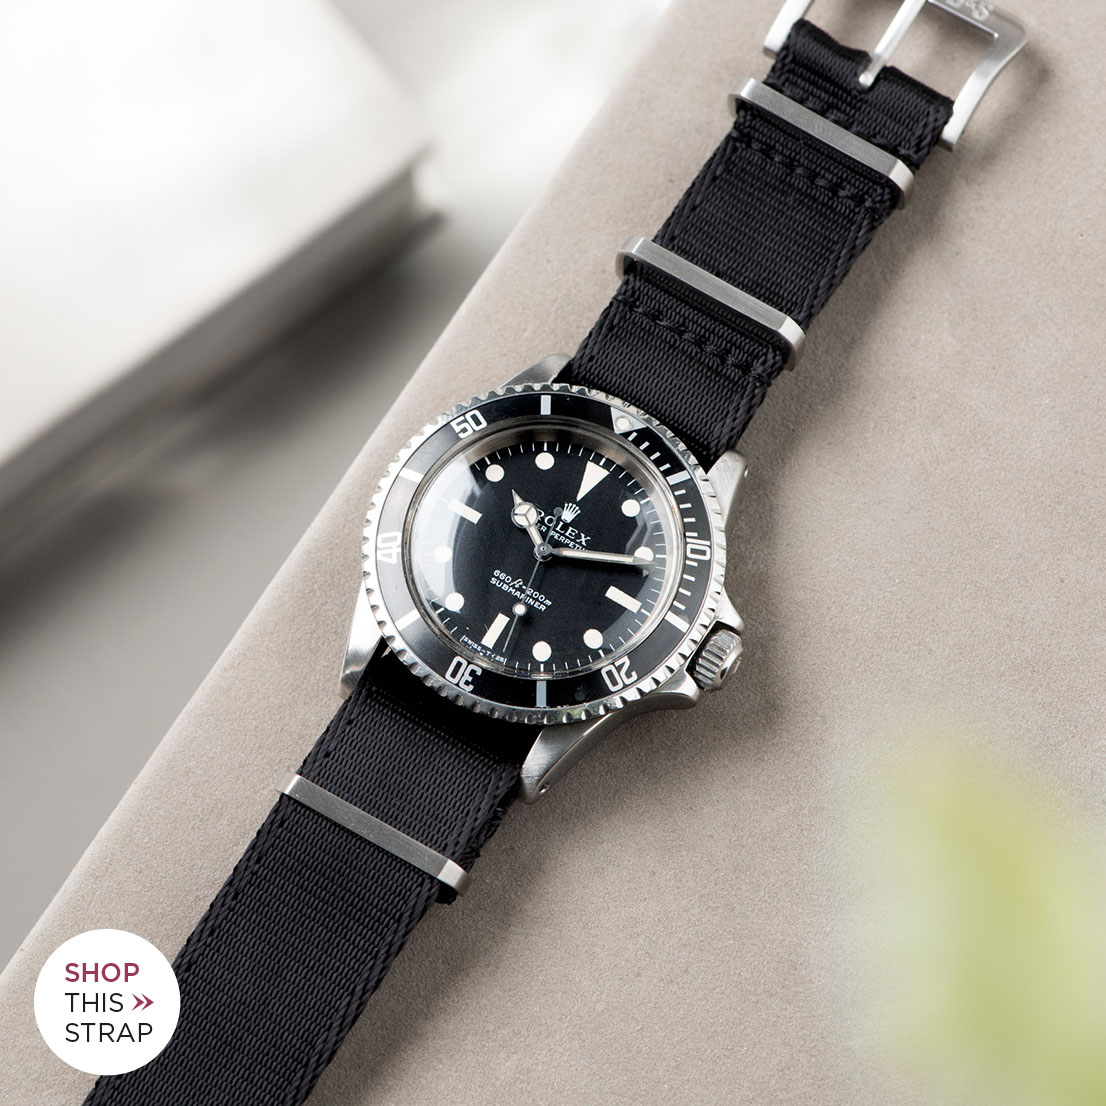 Bulang and Sons_Strap Guide_Rolex 5513 Submariner_DELUXE NYLON NATO WATCH STRAP PURE BLACK_21403